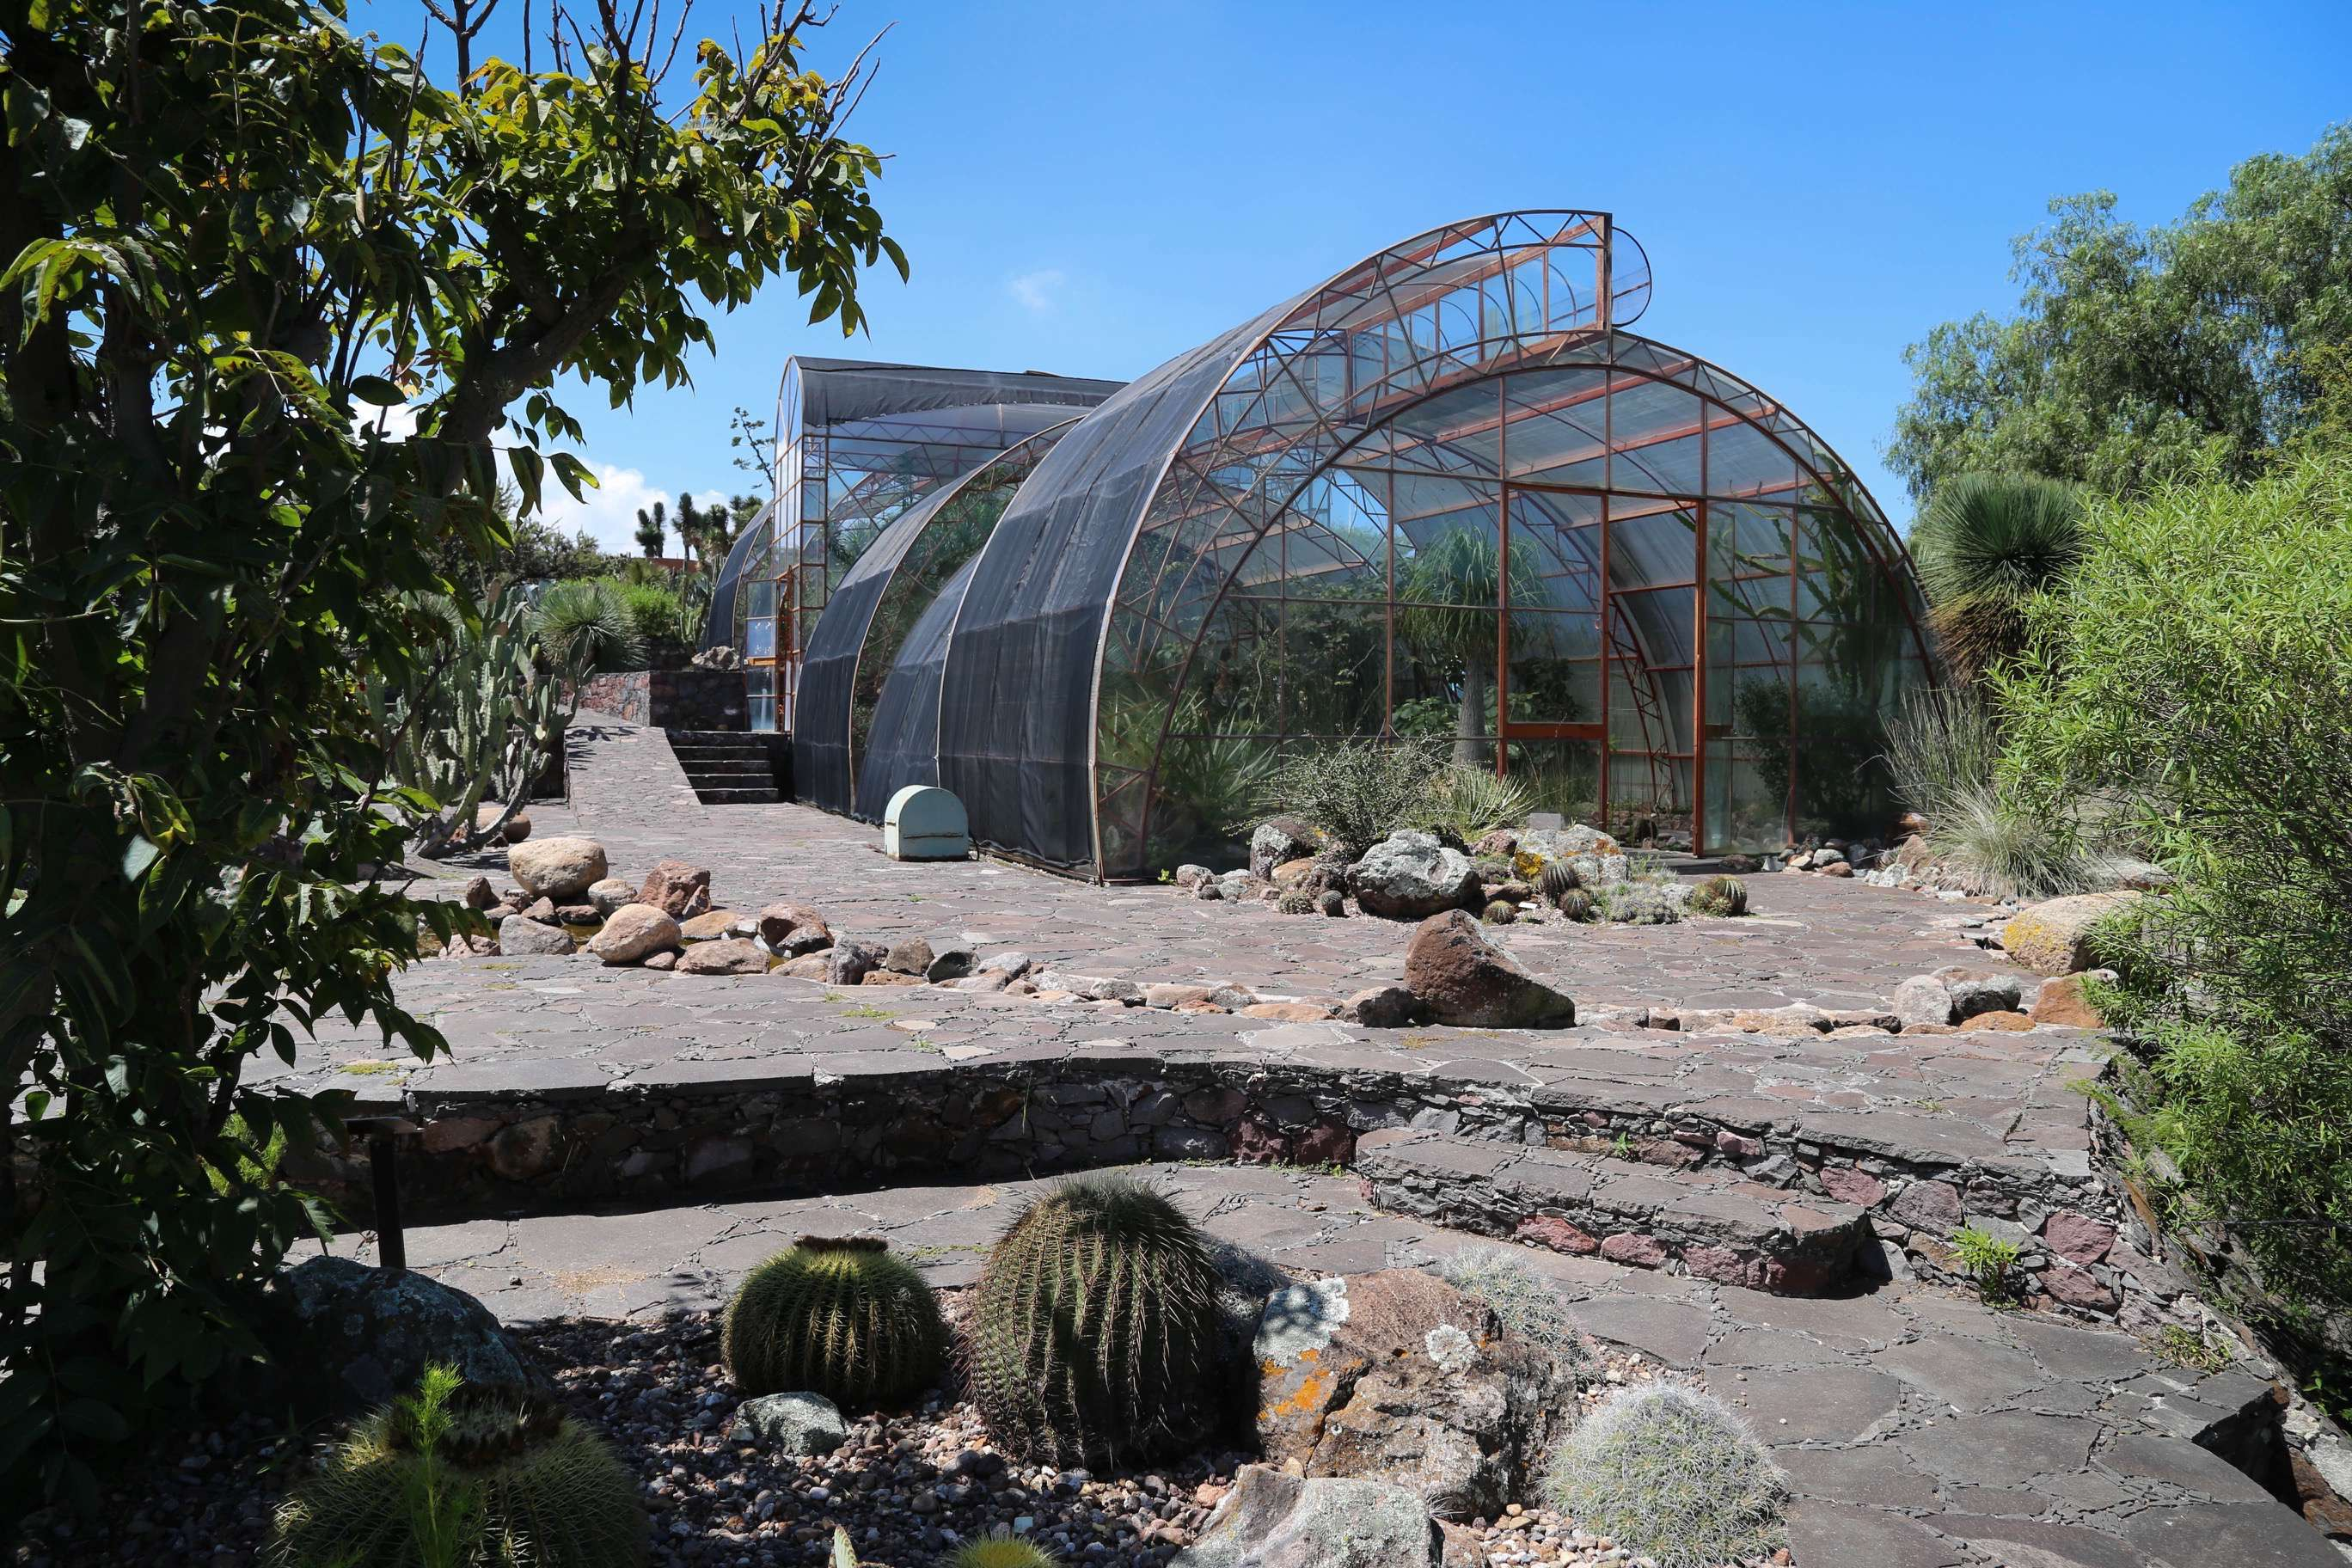 The greenhouse, toward the end of the guided tour, houses an array of plant life.